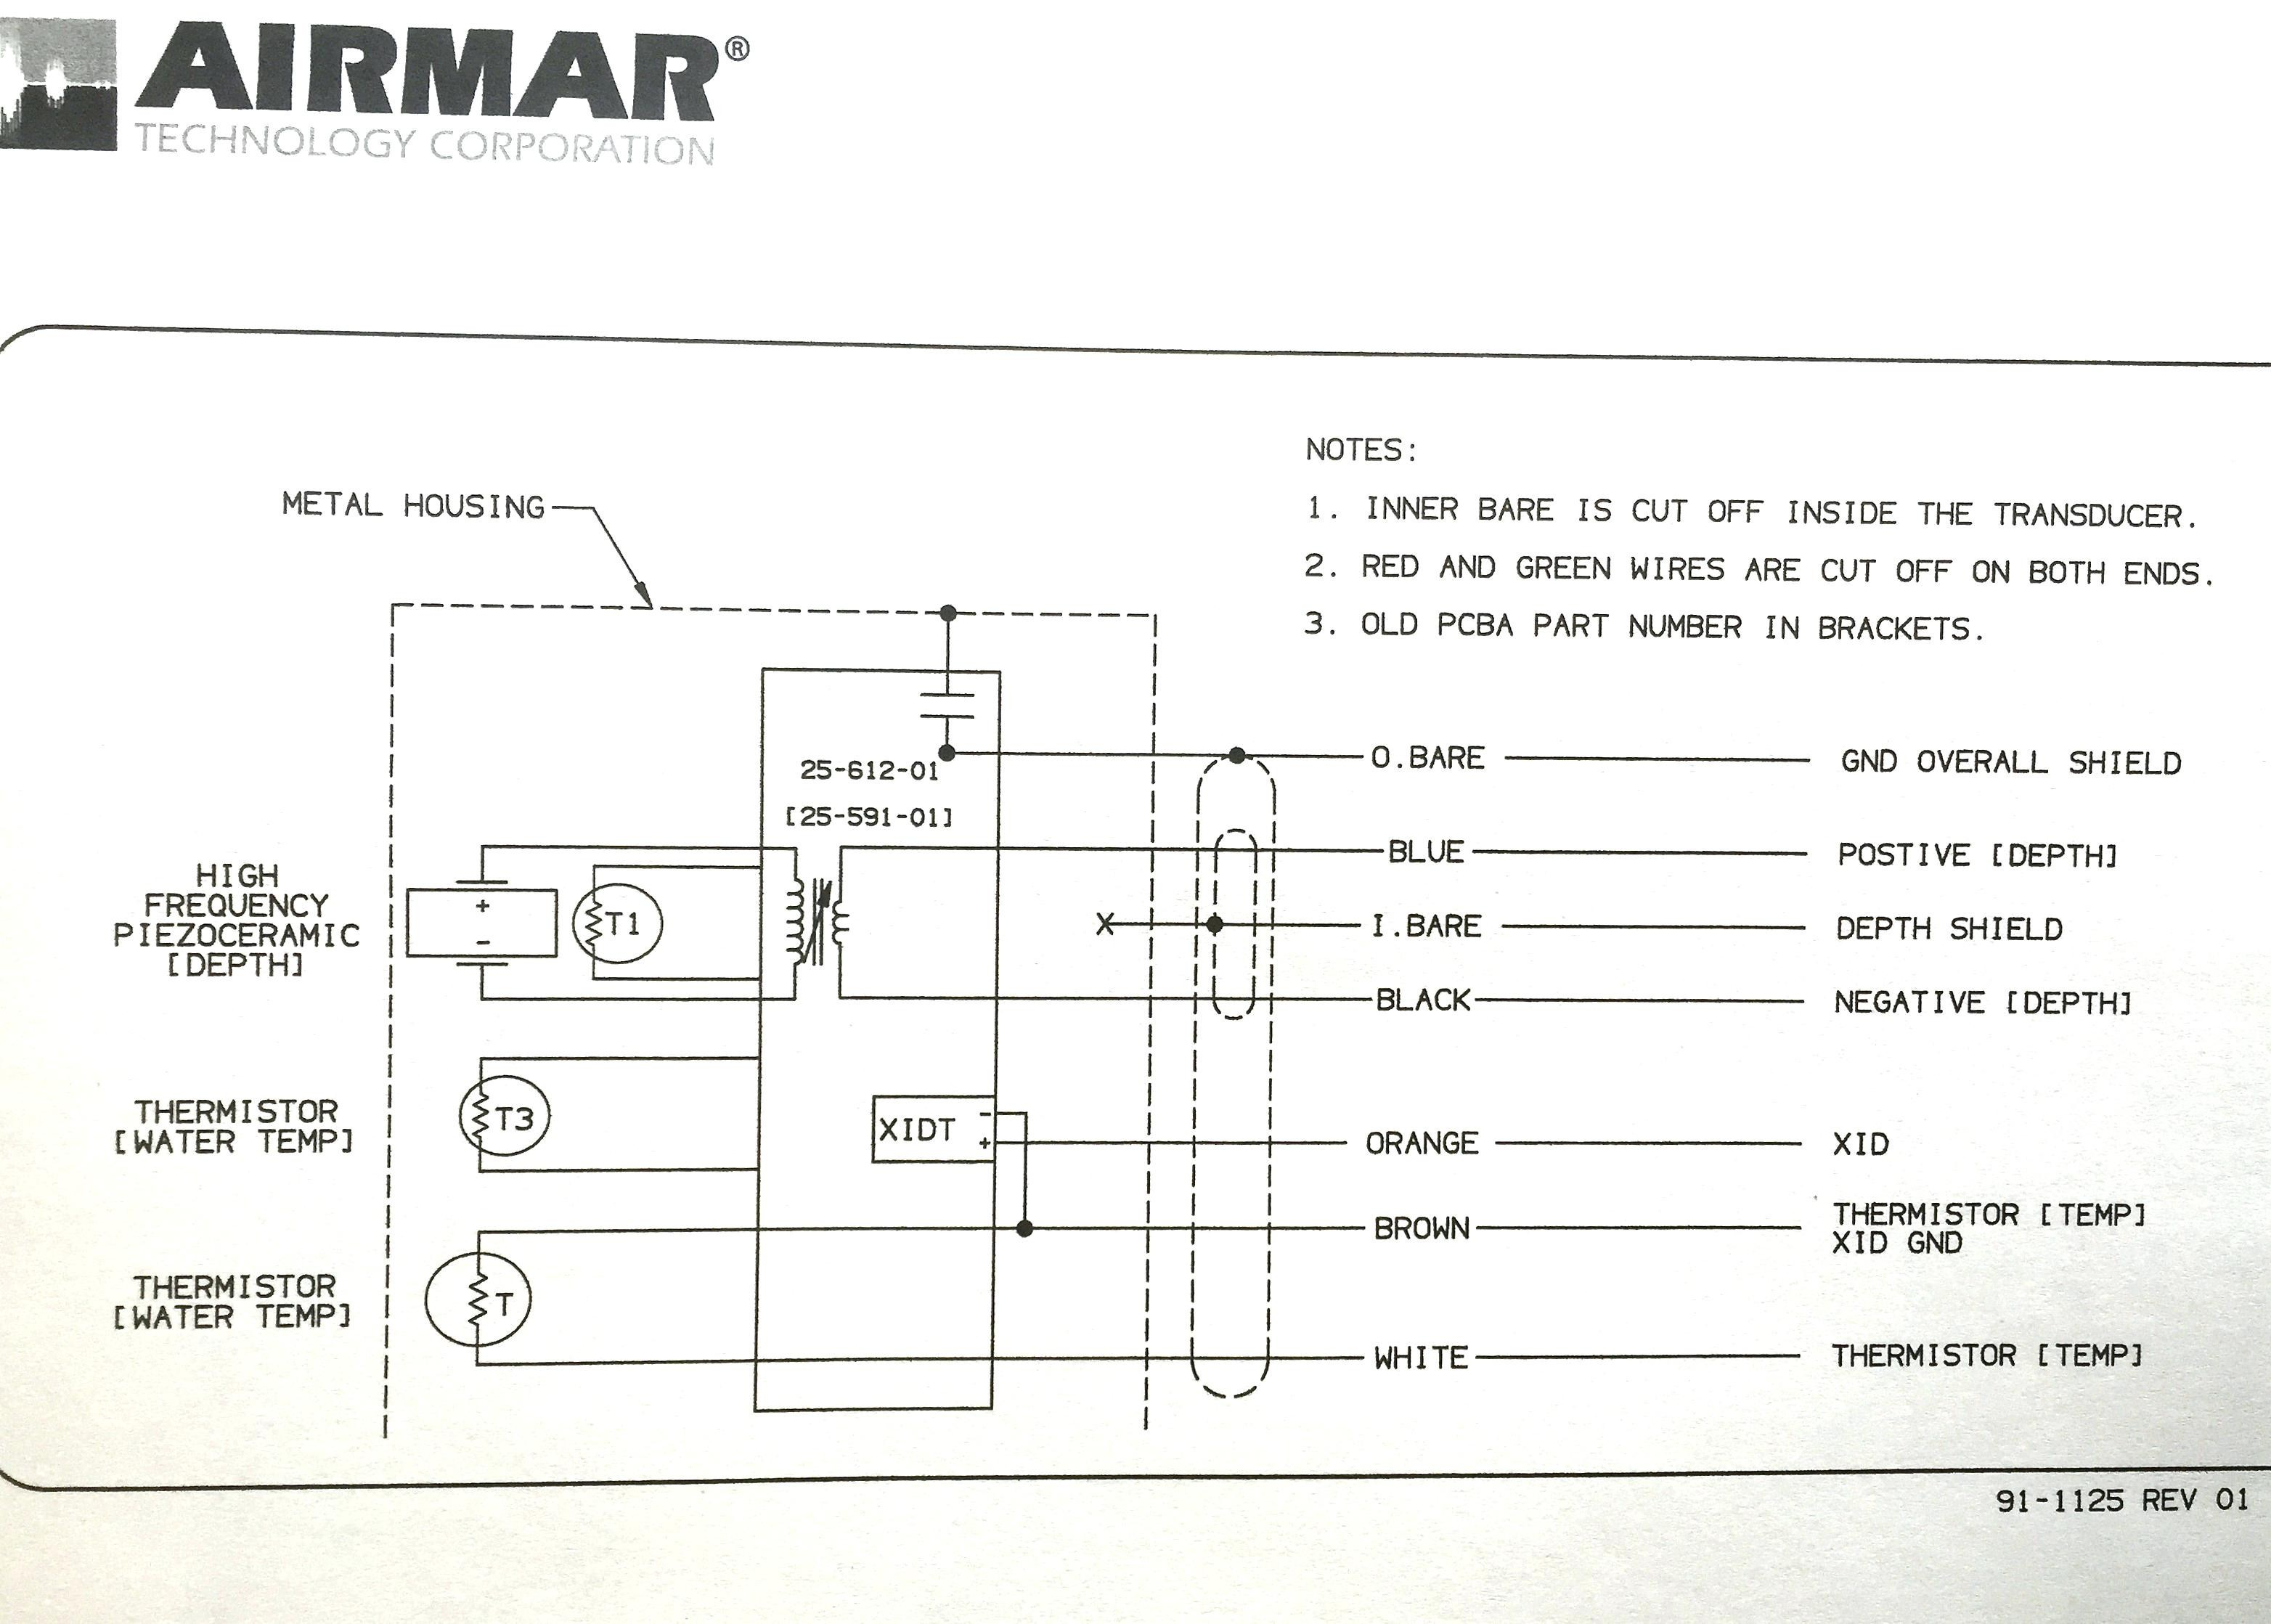 Garmin Transducer Wiring Diagram